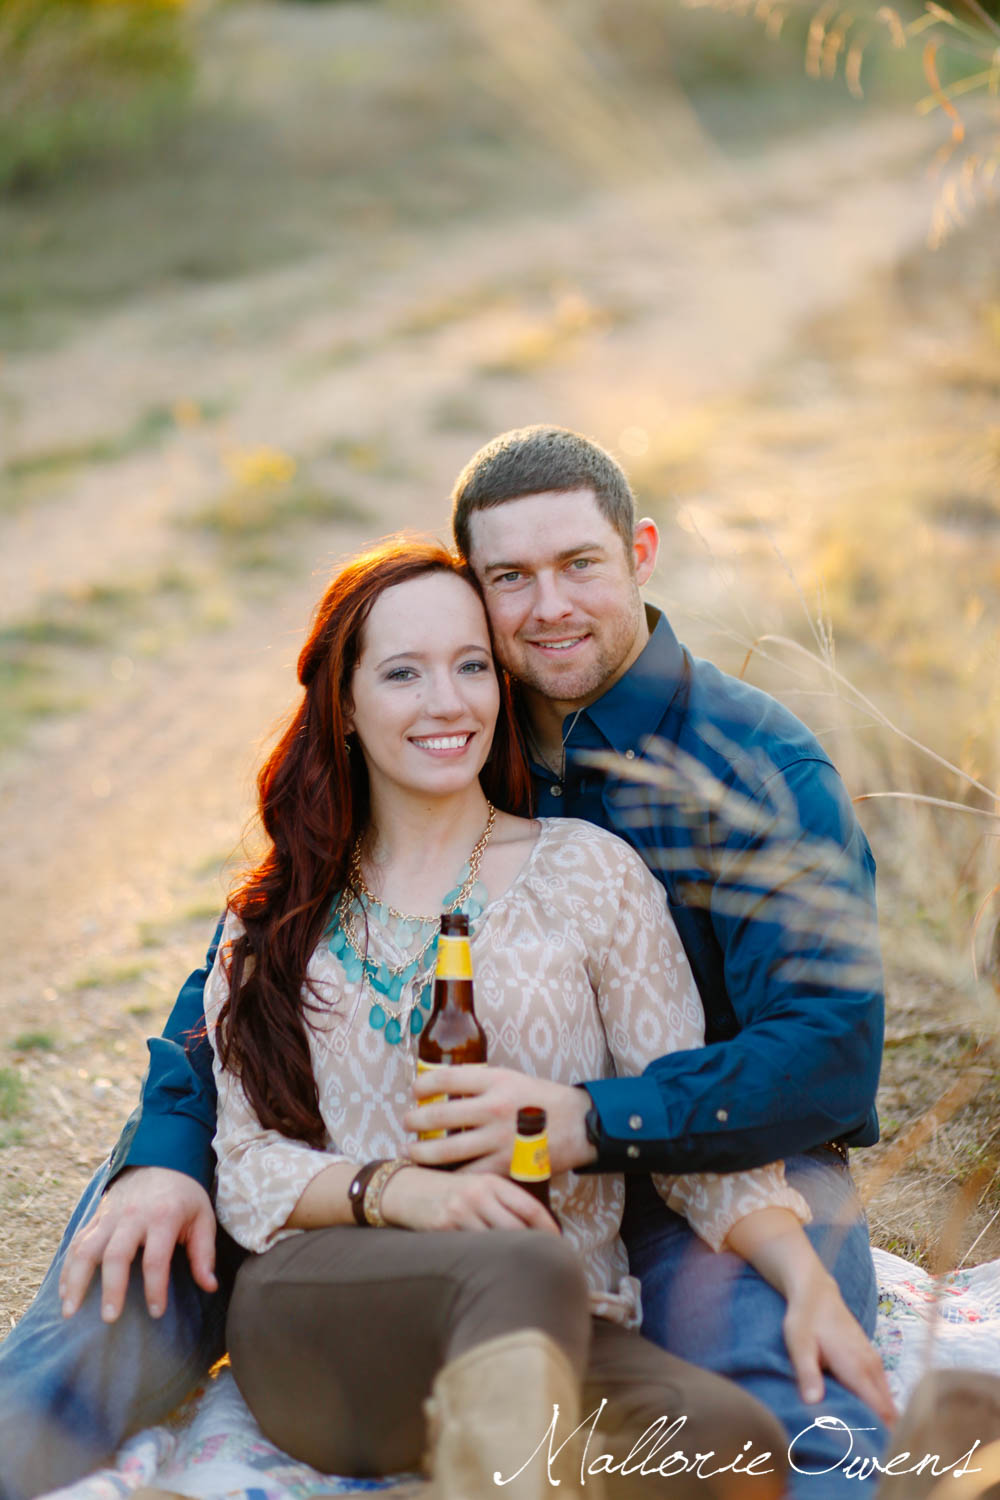 Texas Engagement Photography   MALLORIE OWENS